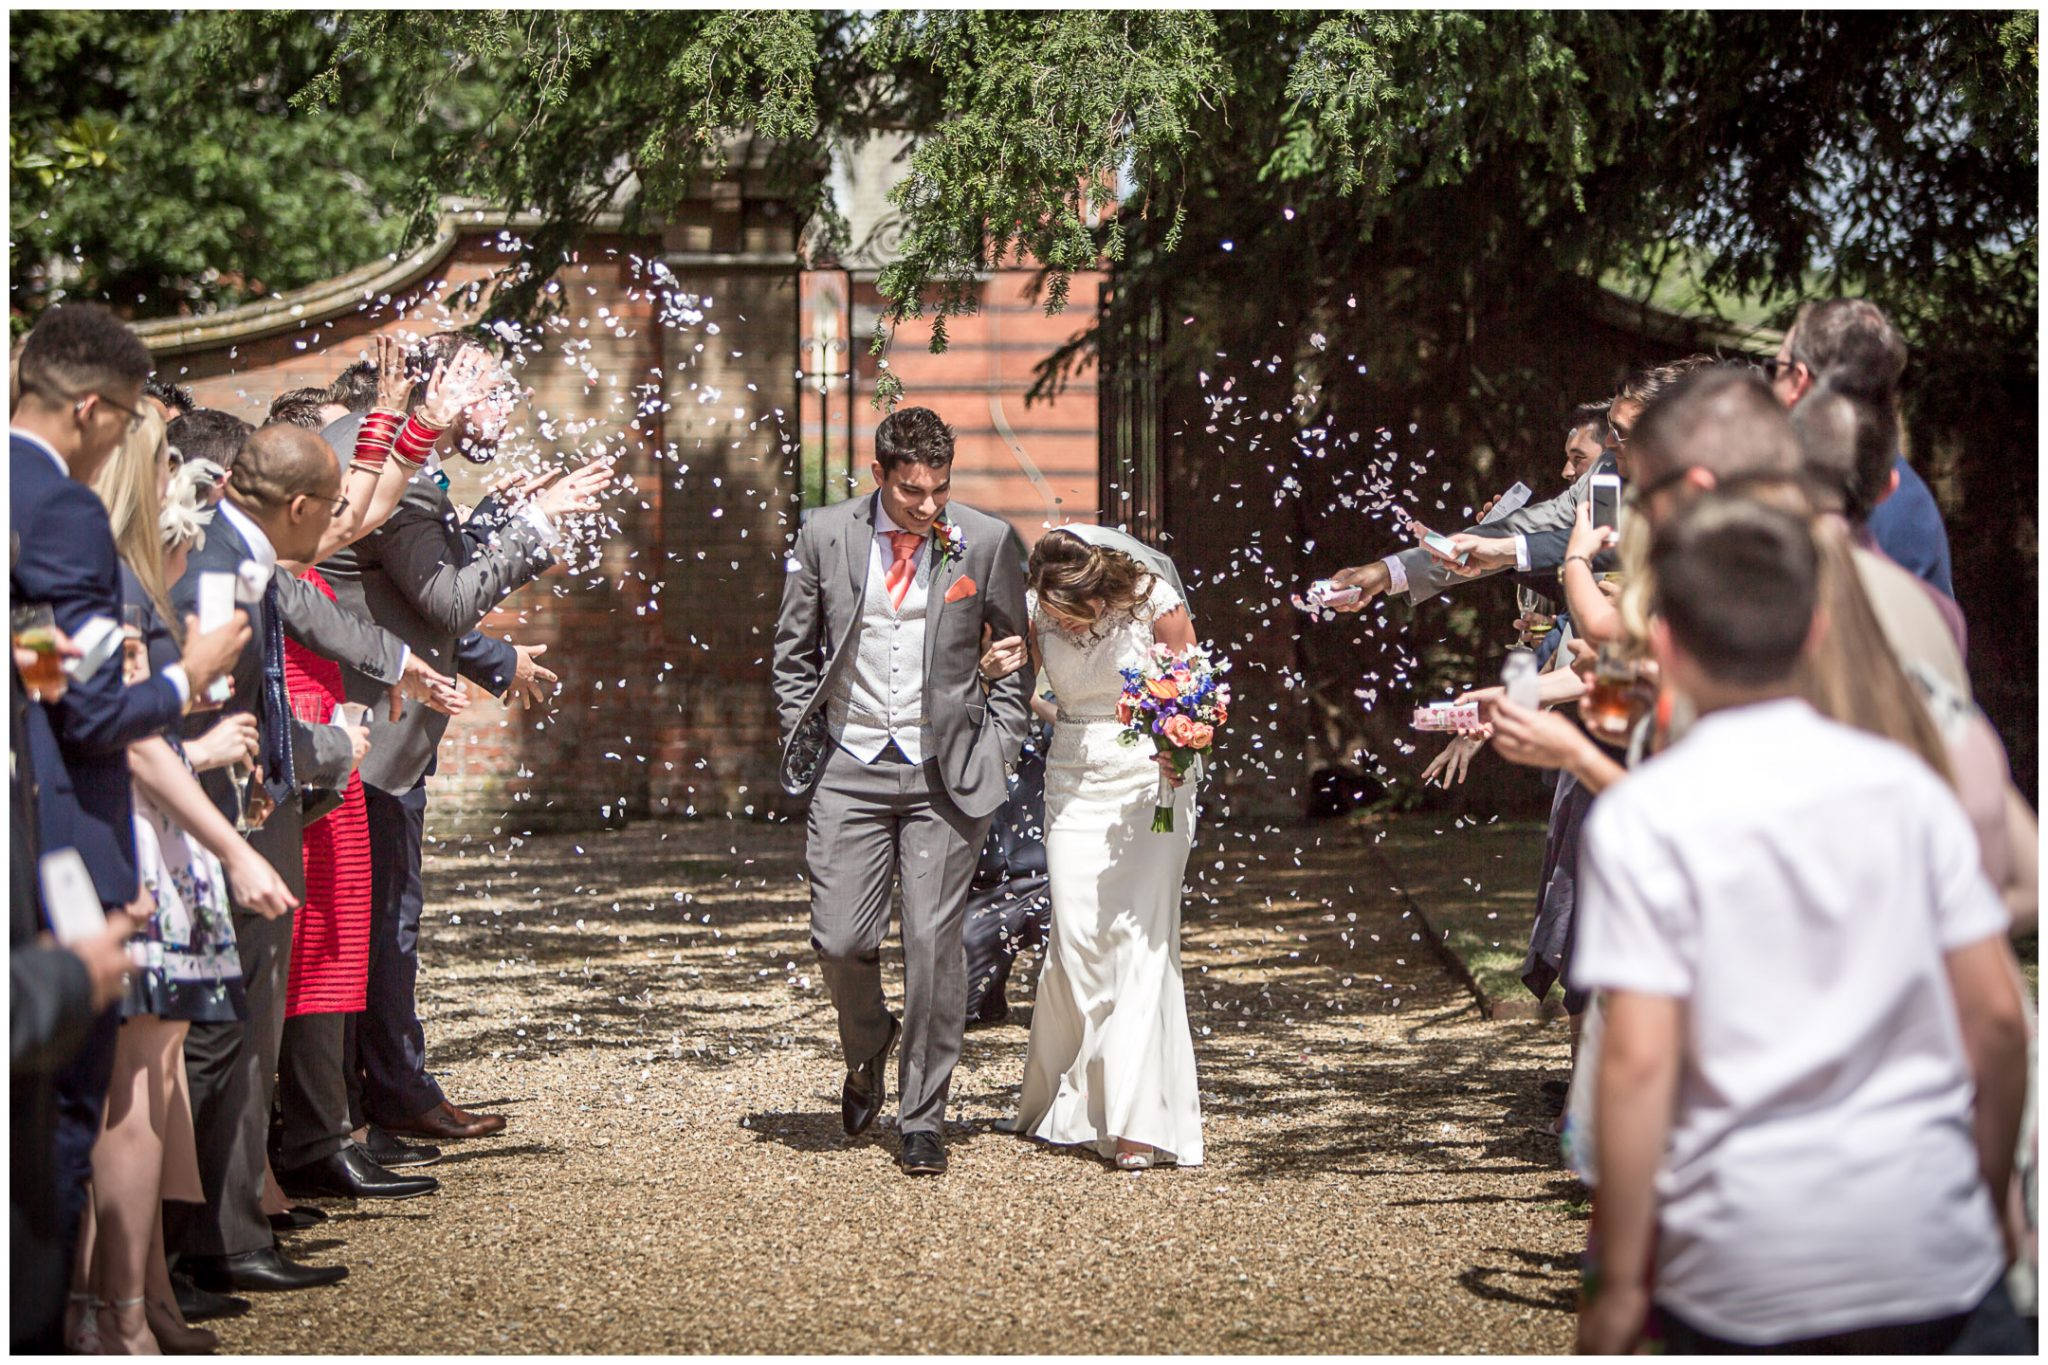 Coloour photo of confetti as bride and groom arrive for reception